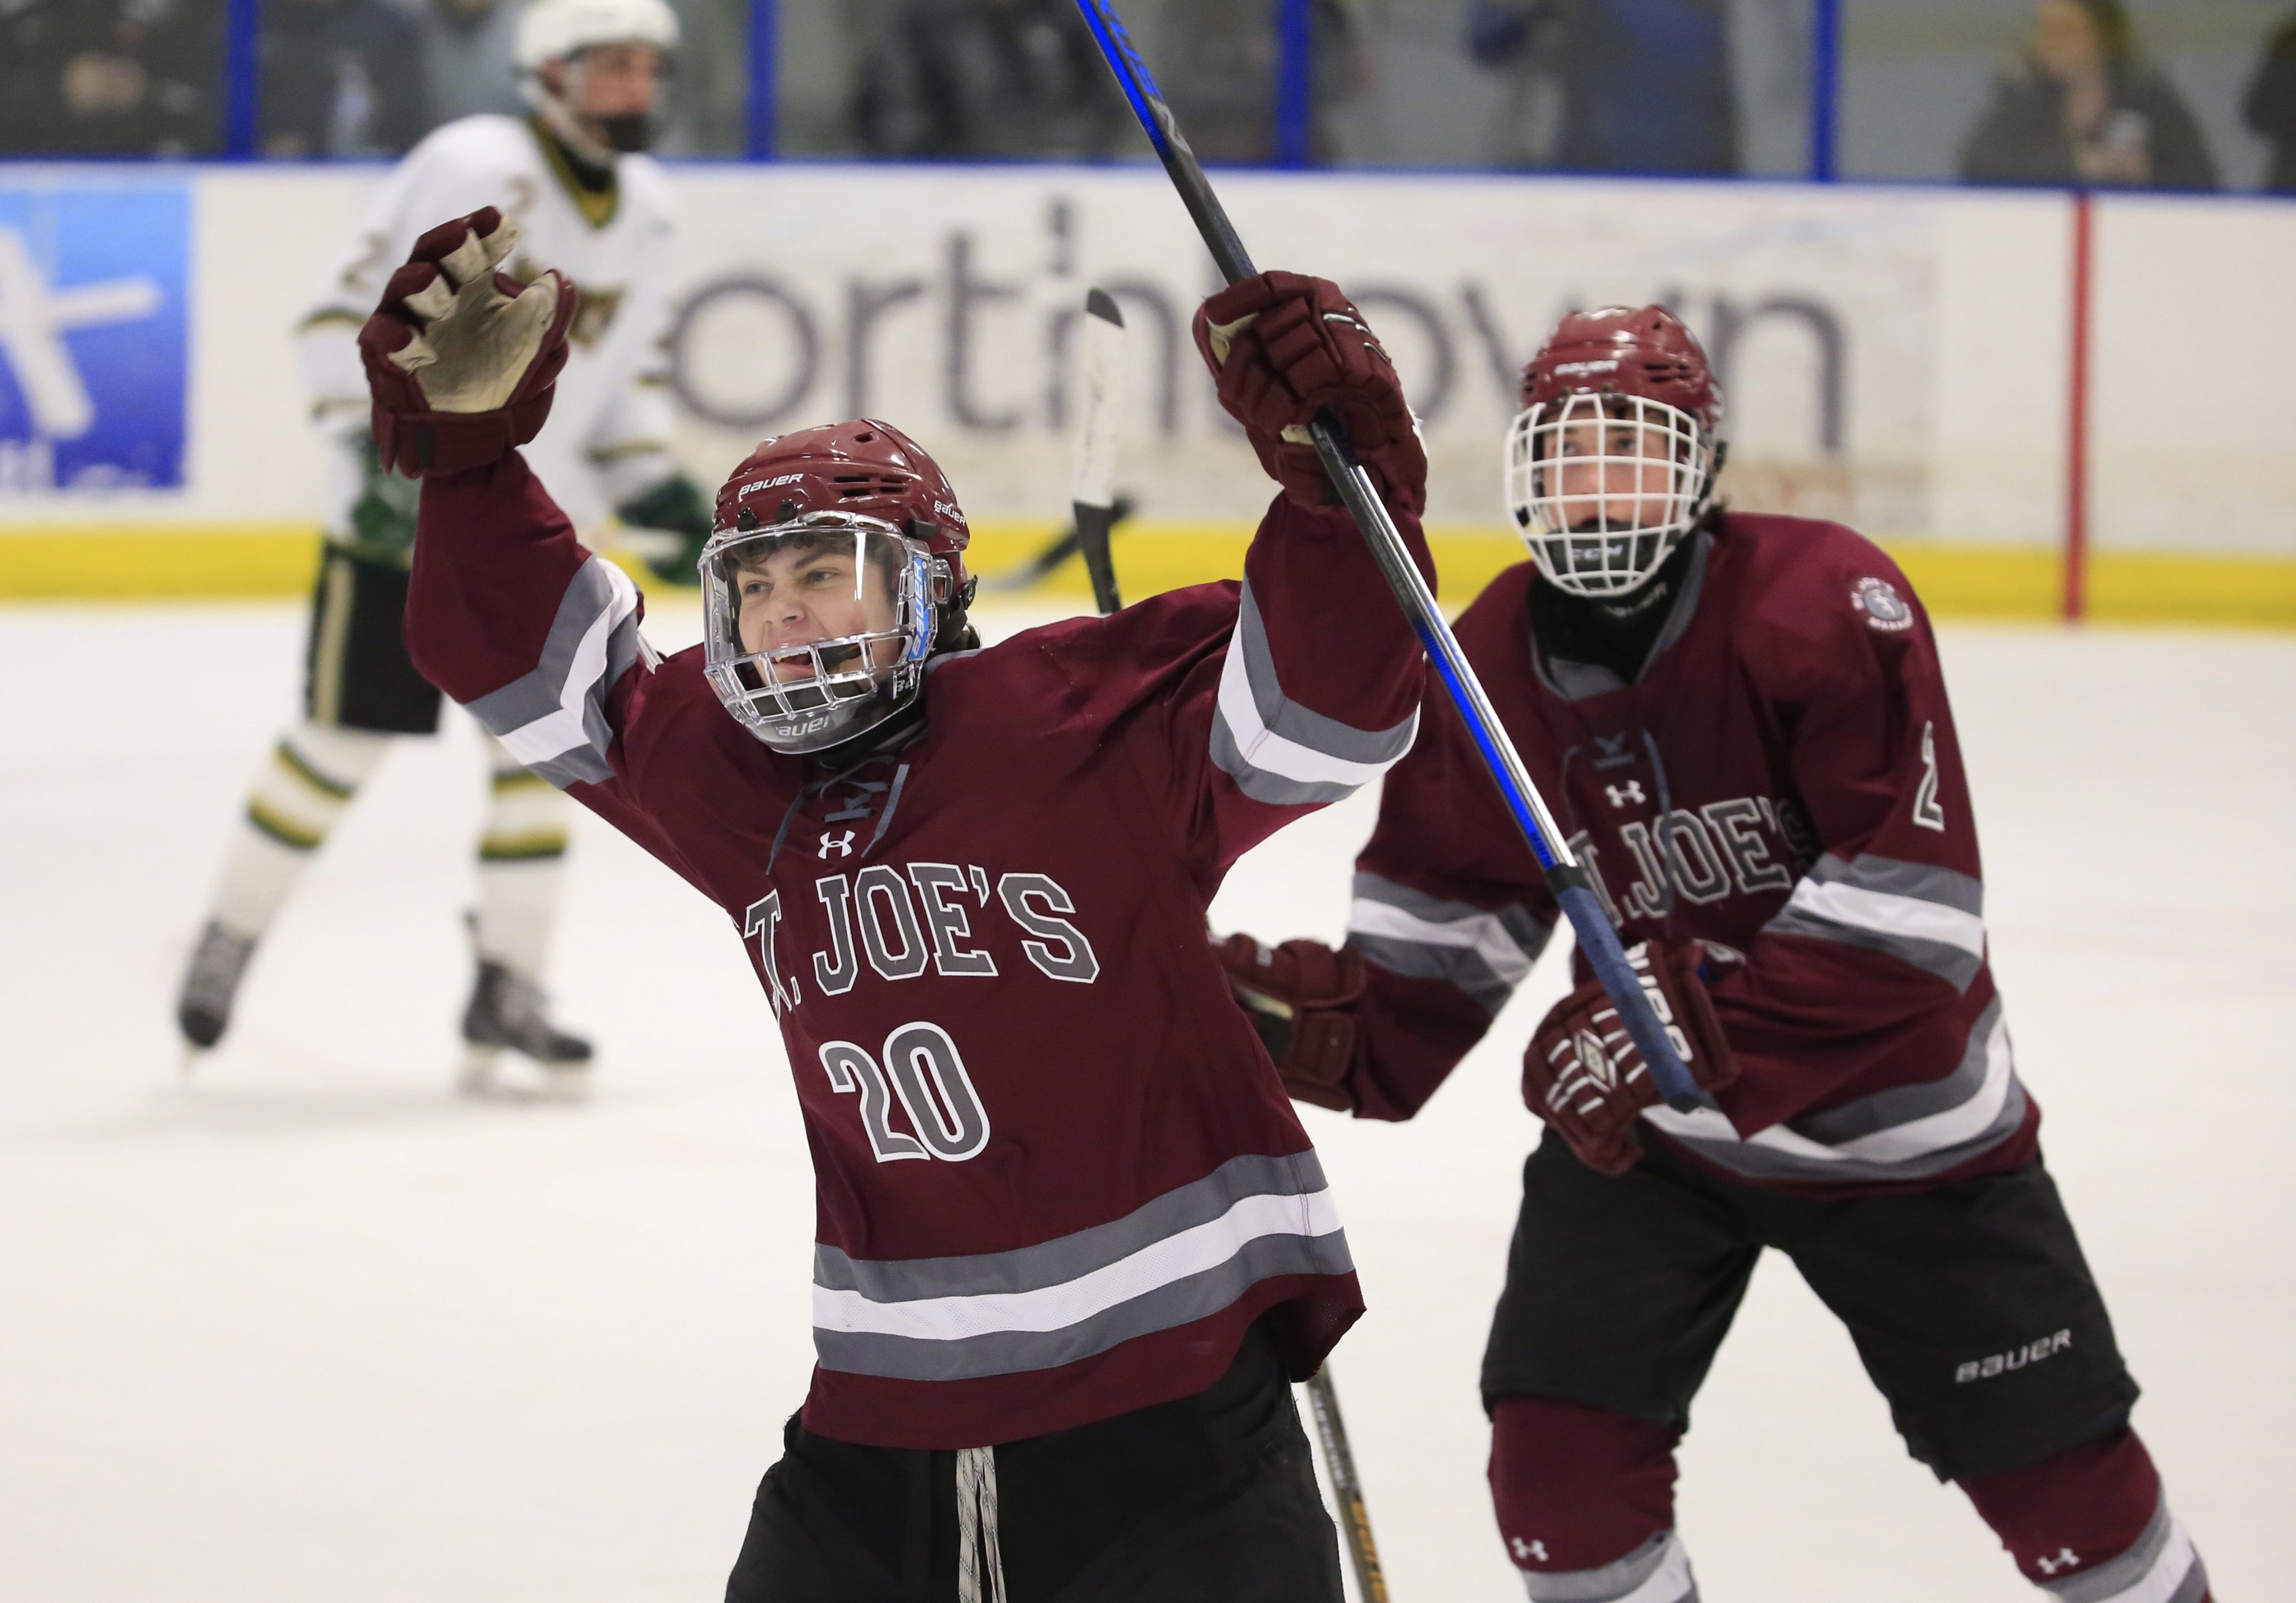 Erich Thur celebrates with teammates from St. Joe's after he scored against Williamsville North during action at the Northtown Center on Thursday.